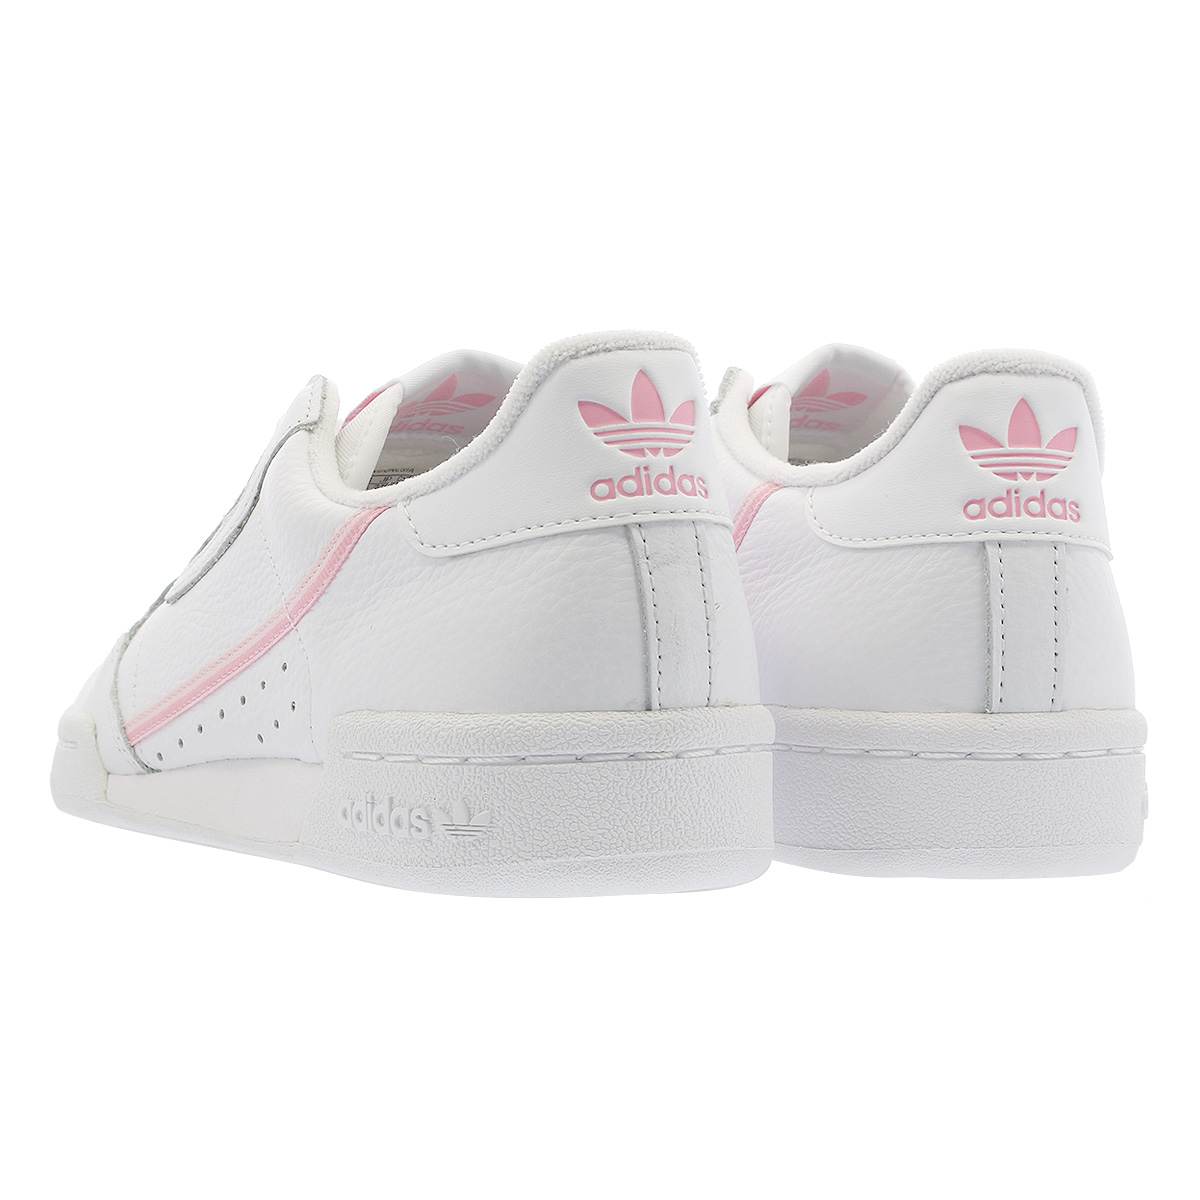 cd898e0fb846 adidas CONTINENTAL 80W Adidas Continental 80W RUNNING WHITE TRUE PINK CLEAR  PINK g27722